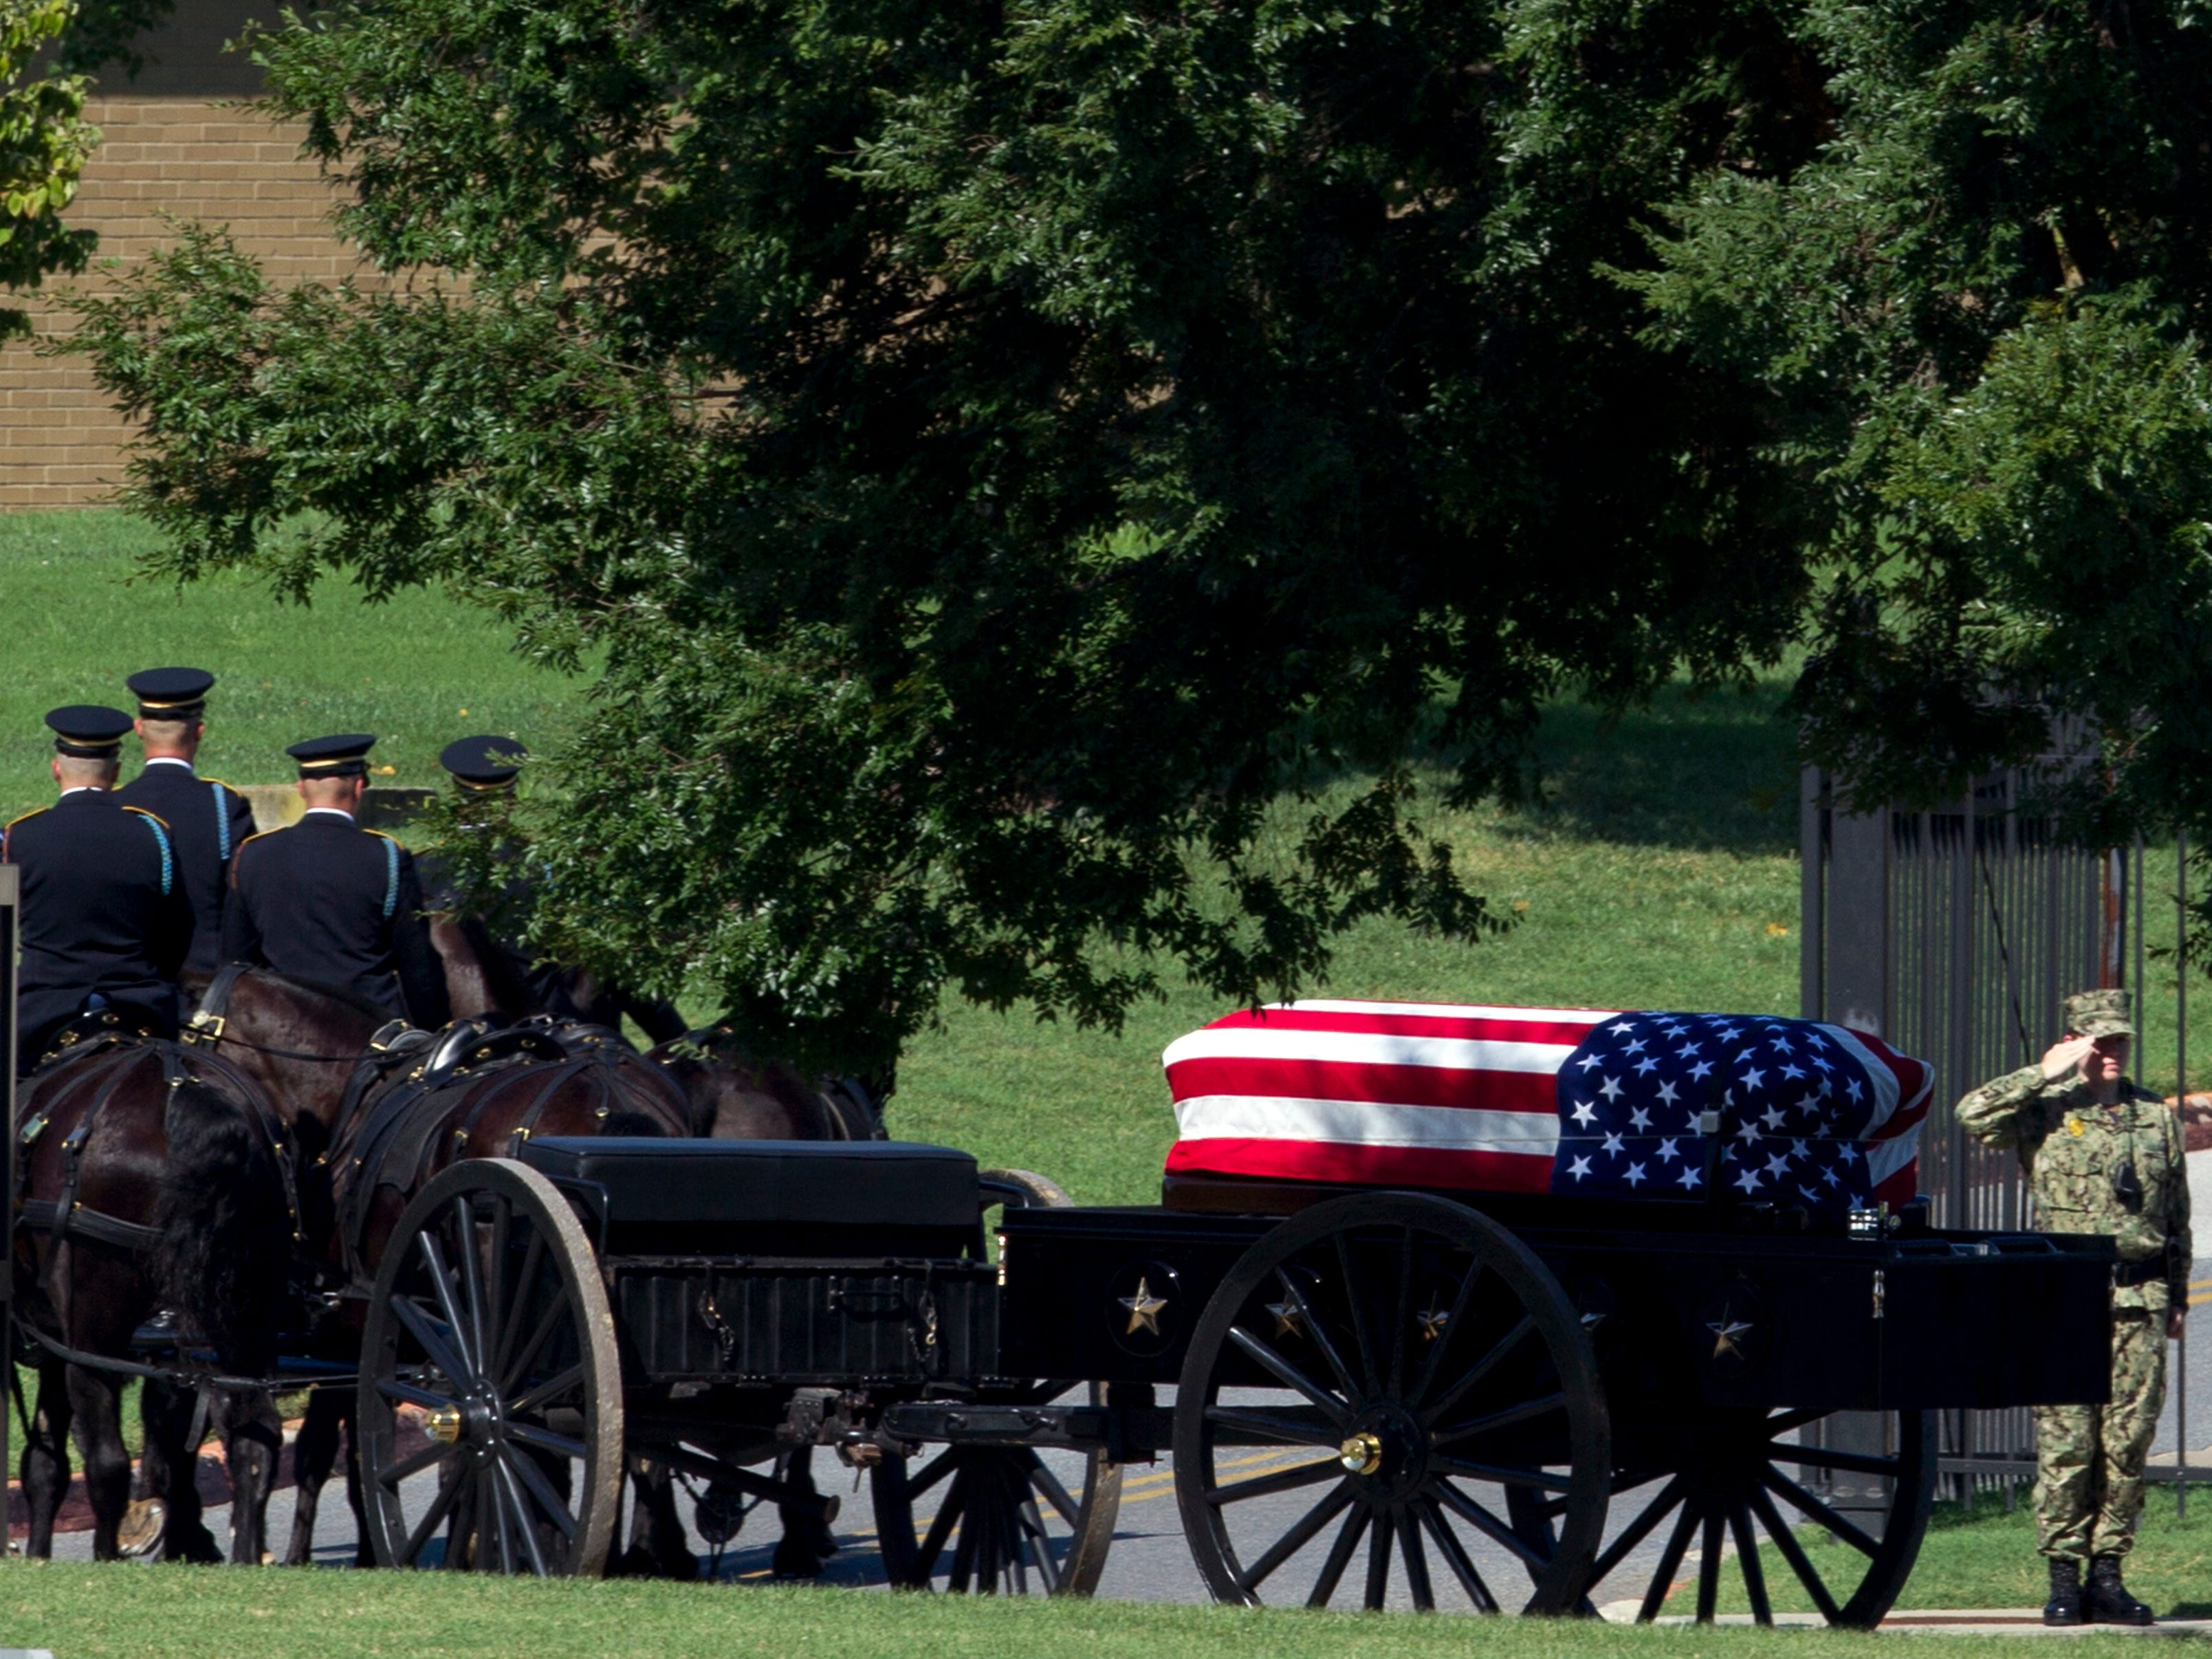 A horse drawn caisson carries the casket containing the remains of Sen. John McCain to his burial site at the United States Naval Academy Cemetery in Annapolis, Maryland, Sep. 2, 2018. McCain died Aug. 25 from brain cancer at age 81.